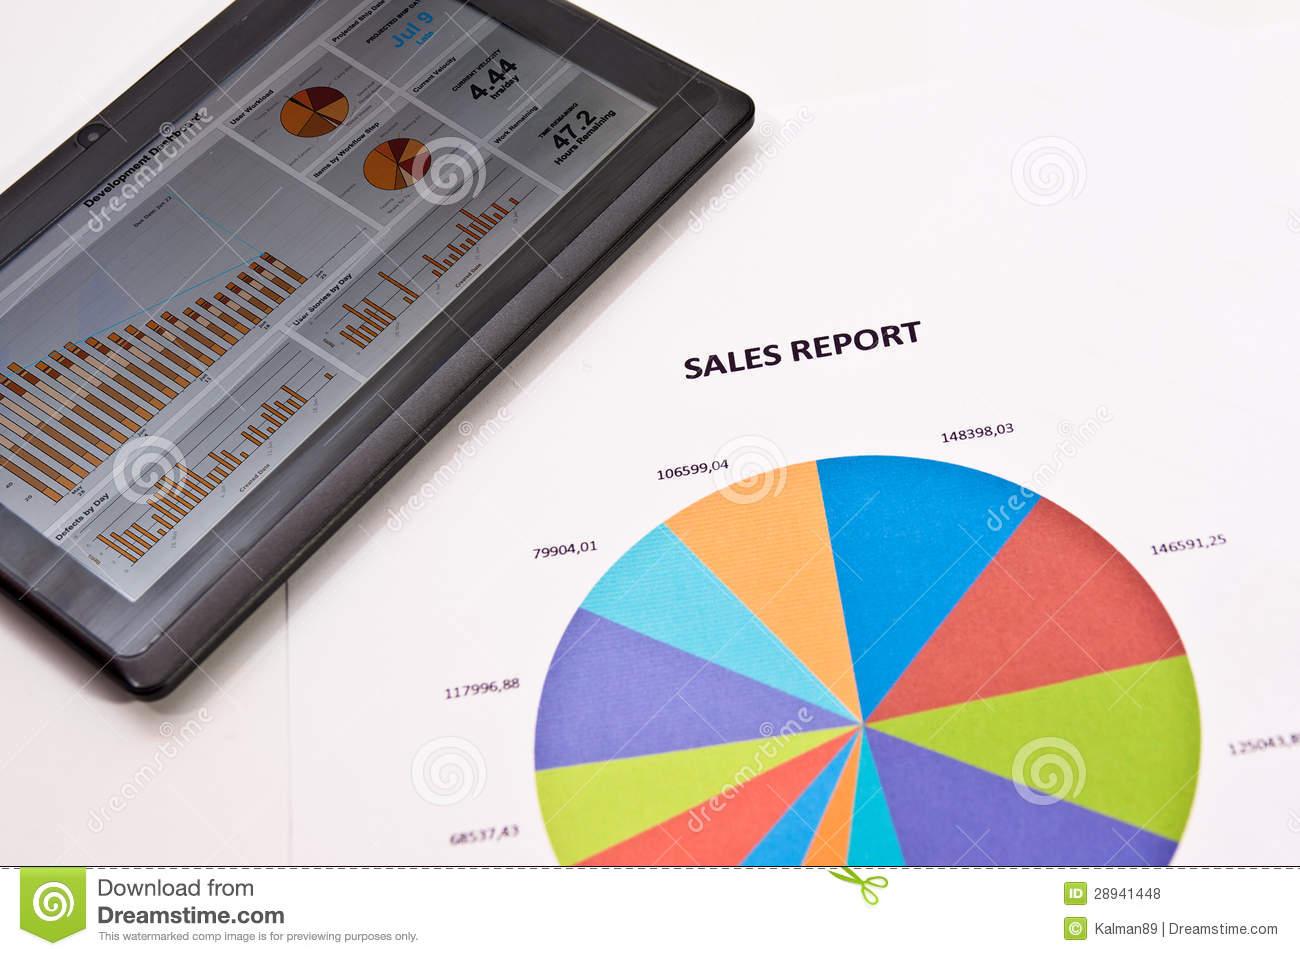 Sales Report on Tablet